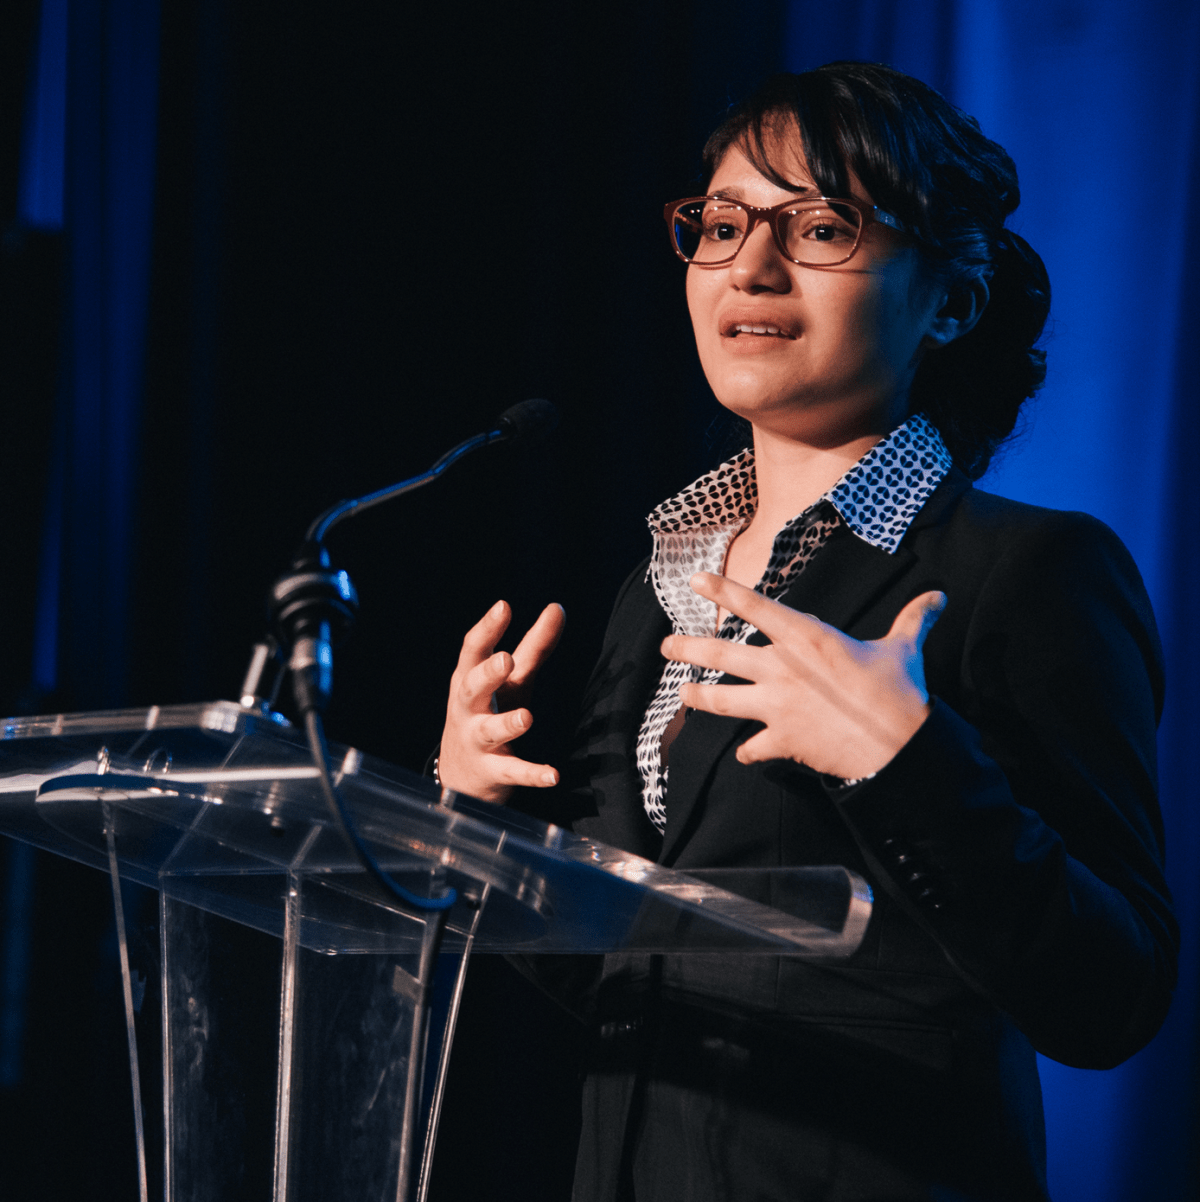 Houston, Boys & Girls Clubs' Great Futures Dinner, September 2015, Carla Trochez